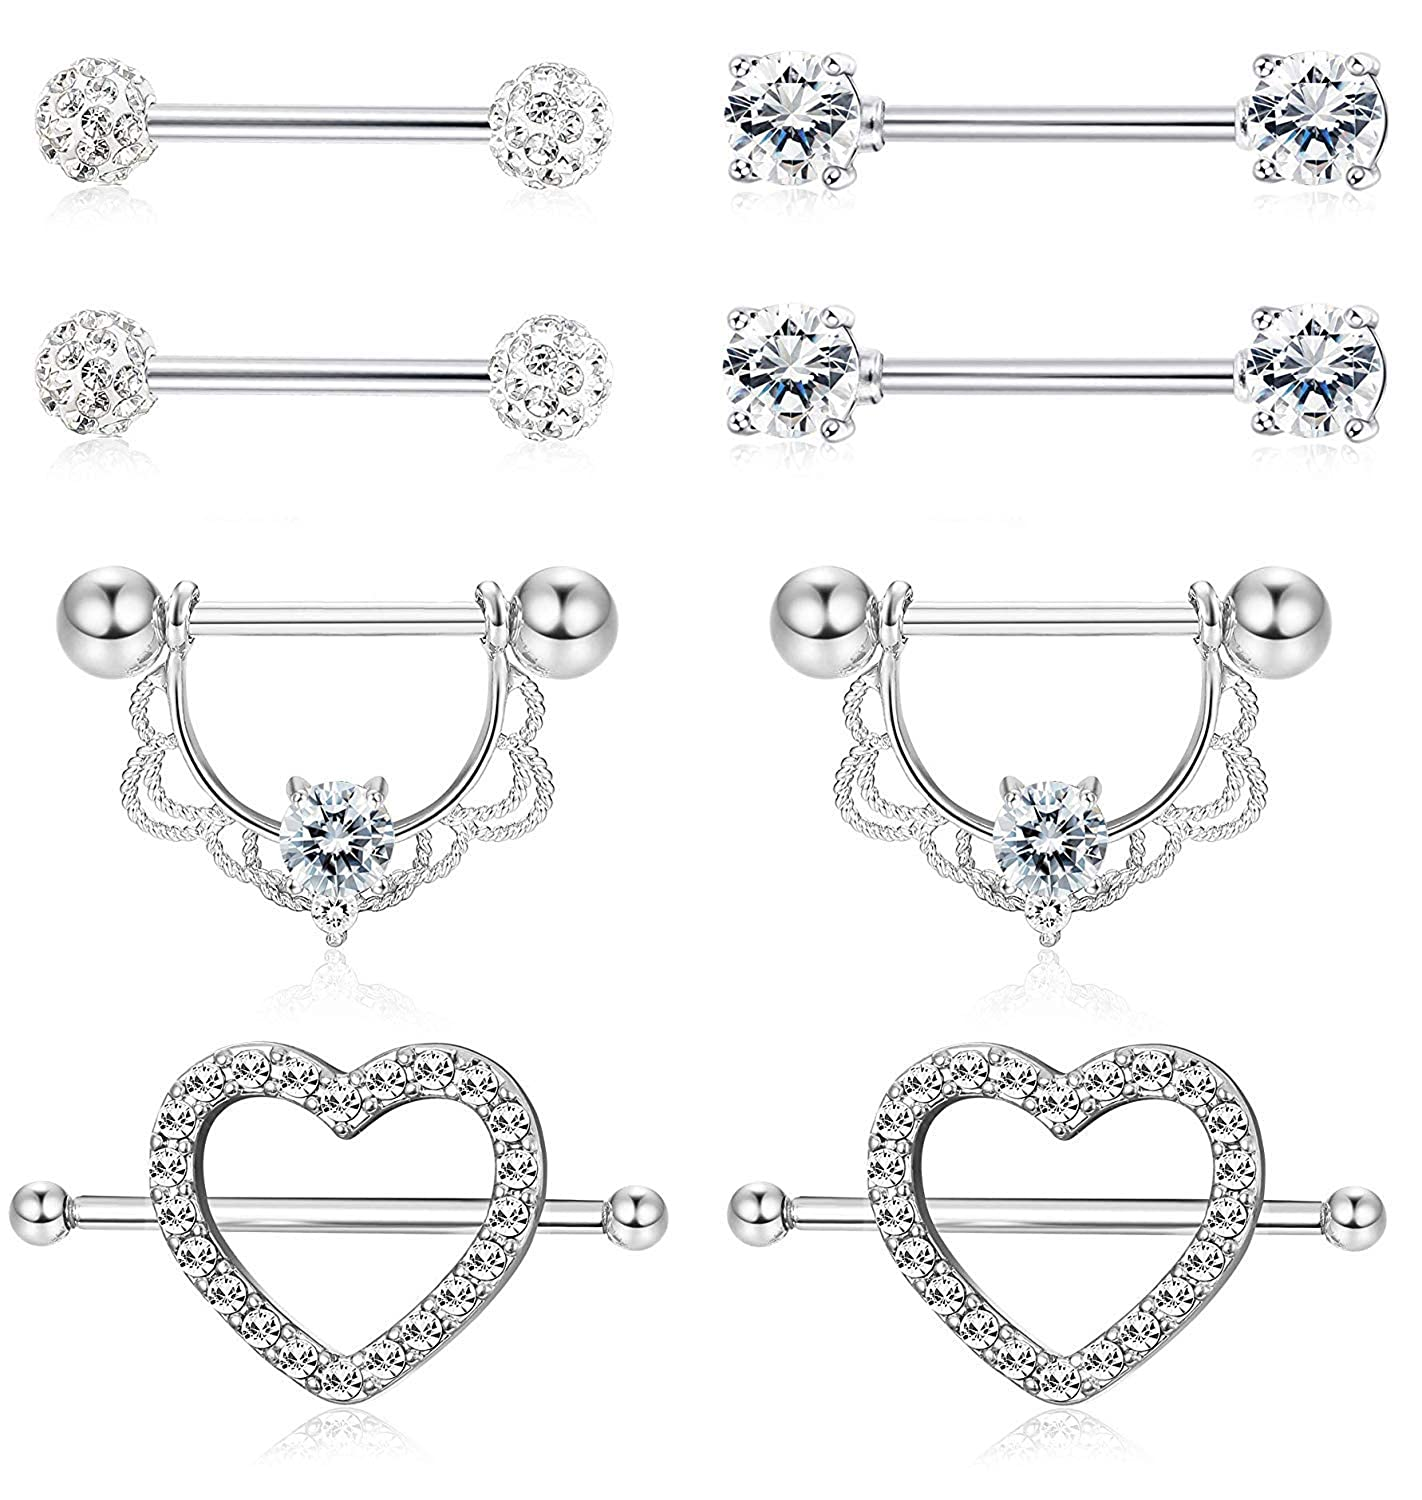 Subiceto 4 Pairs 14G Stainless Steel Nipplerings Nipple Tongue Rings CZ Opal Barbell Body Piercing Jewelry SO-P02-RG